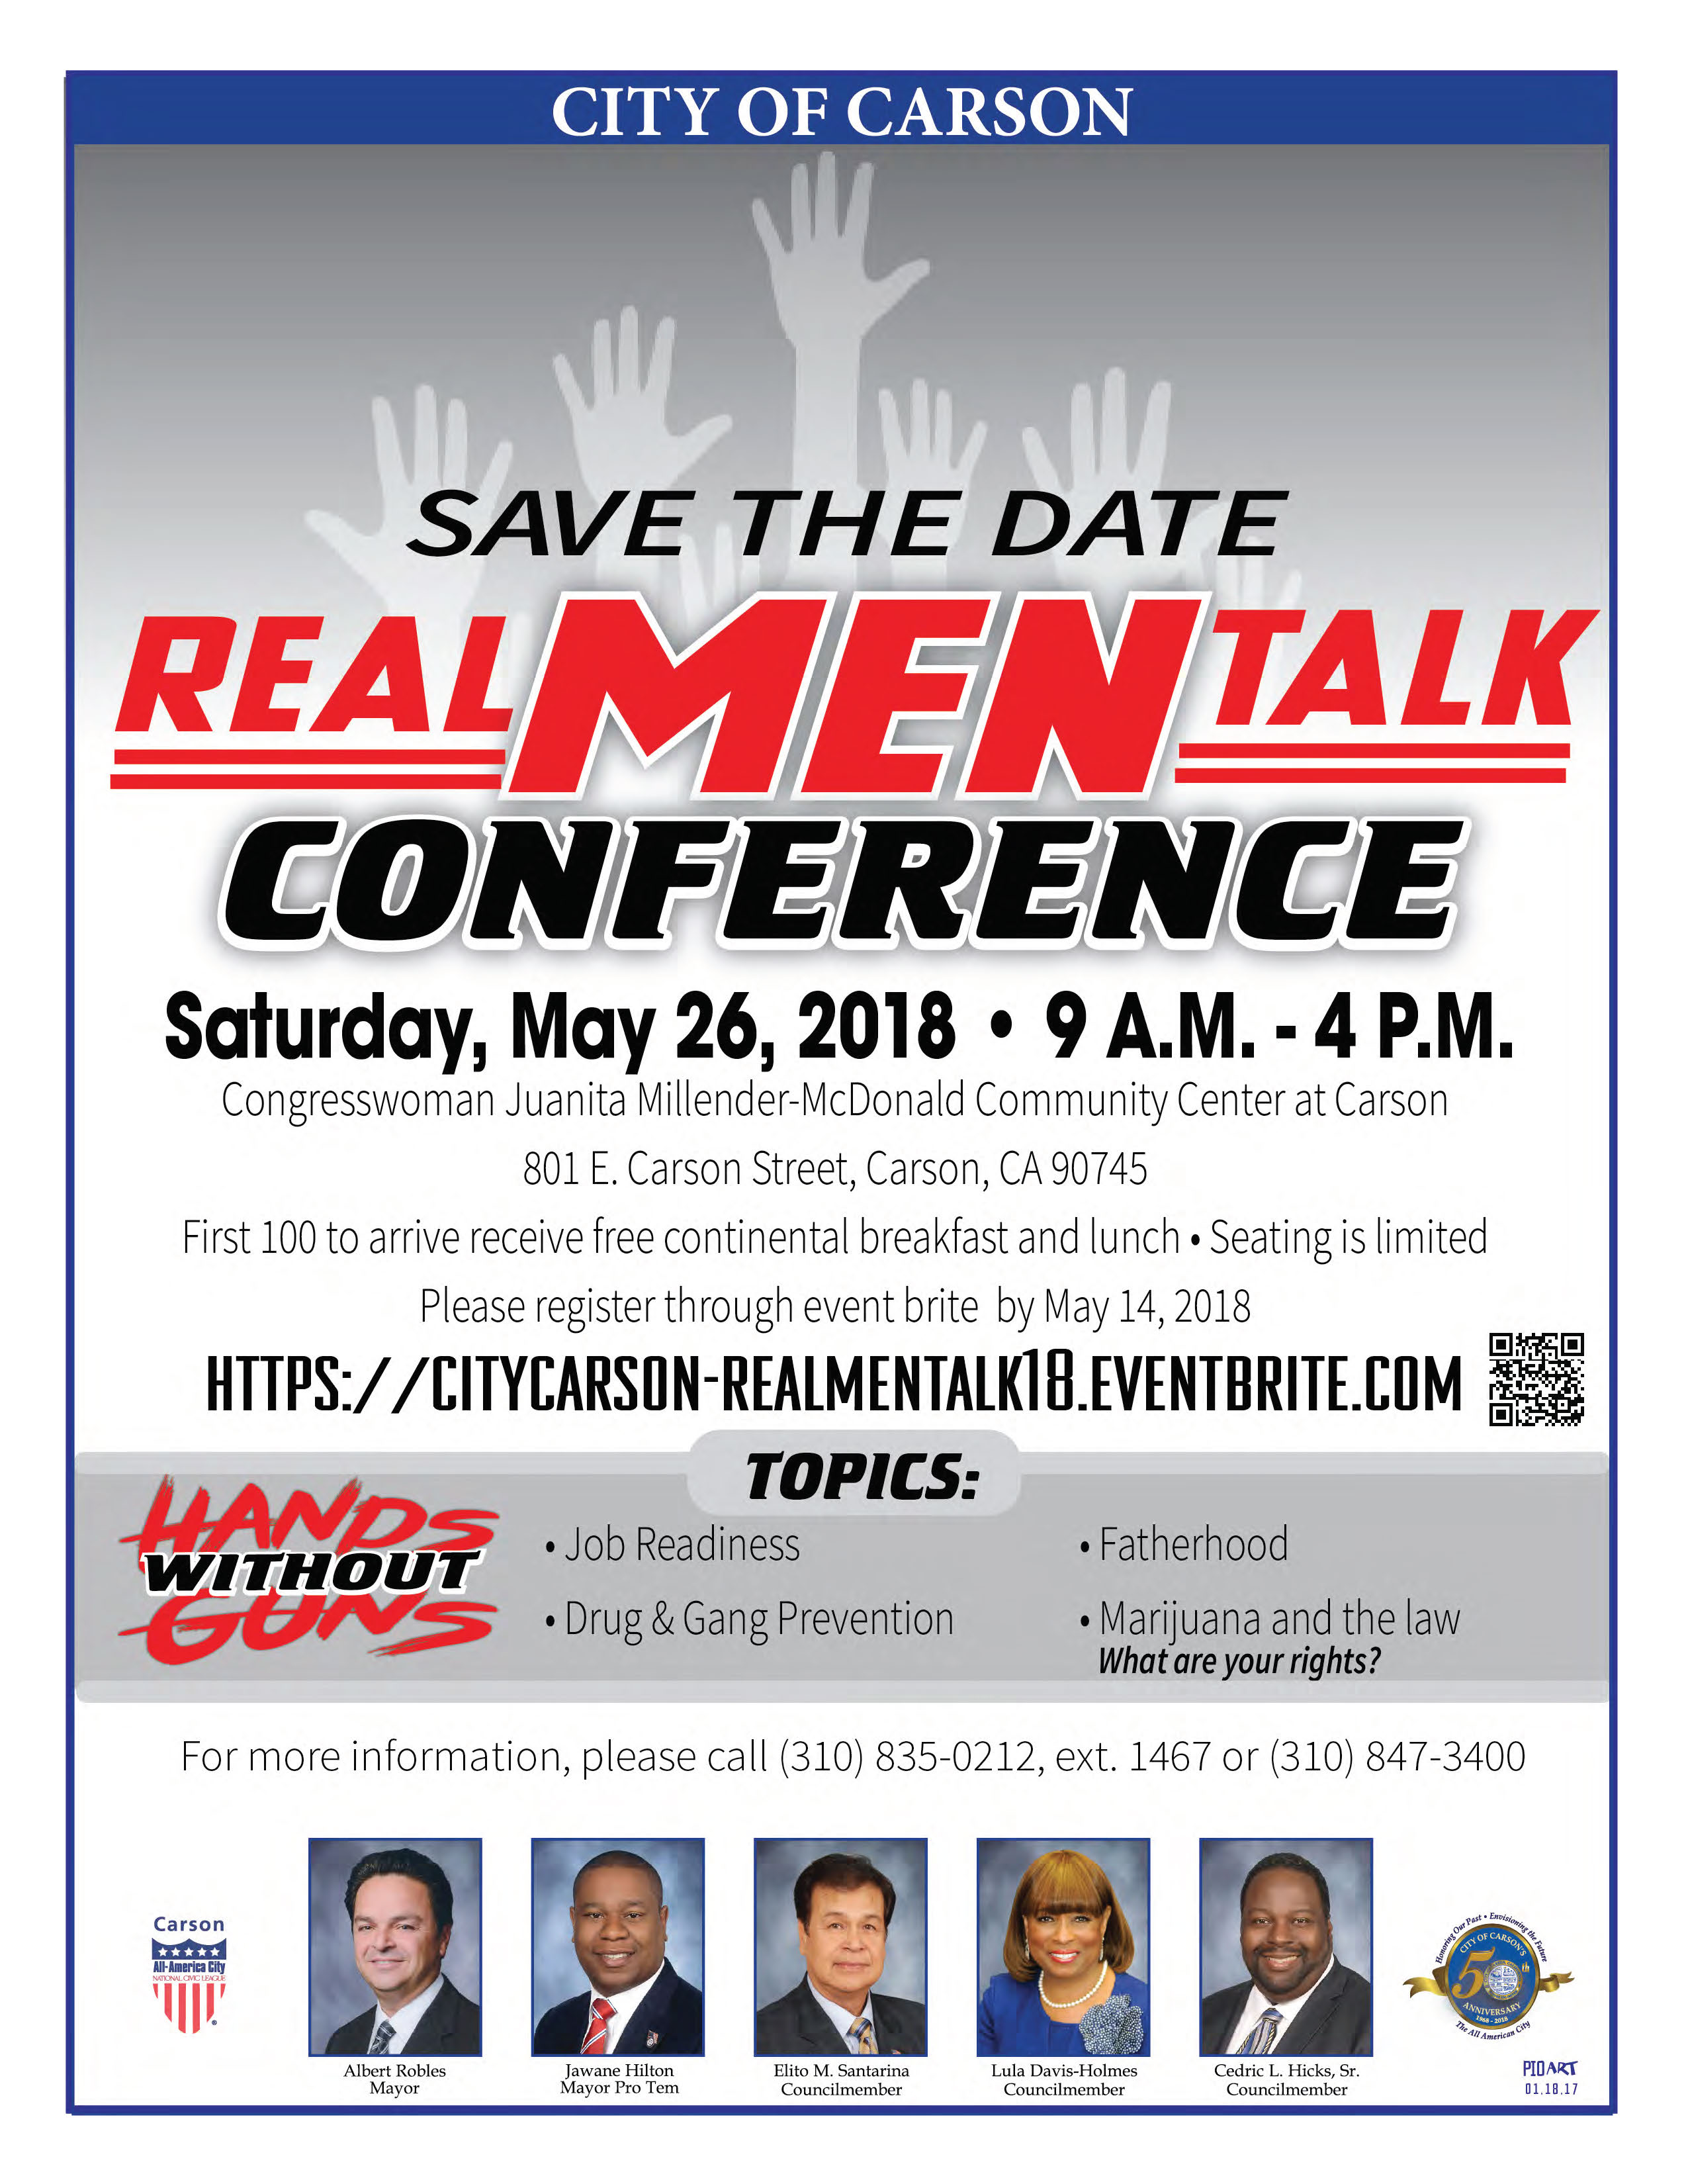 CALLING ALL  YOUNG MEN !  We are going to have a powerful time of communicating as MEN. A time for MEN to speak as MEN freely and openly about real topics. COME BE ENCOURAGED AND INSPIRED !  Lunch will be provided, there will be giveaways, resource fair, a step show and more !!  Register Today for this FREE event!